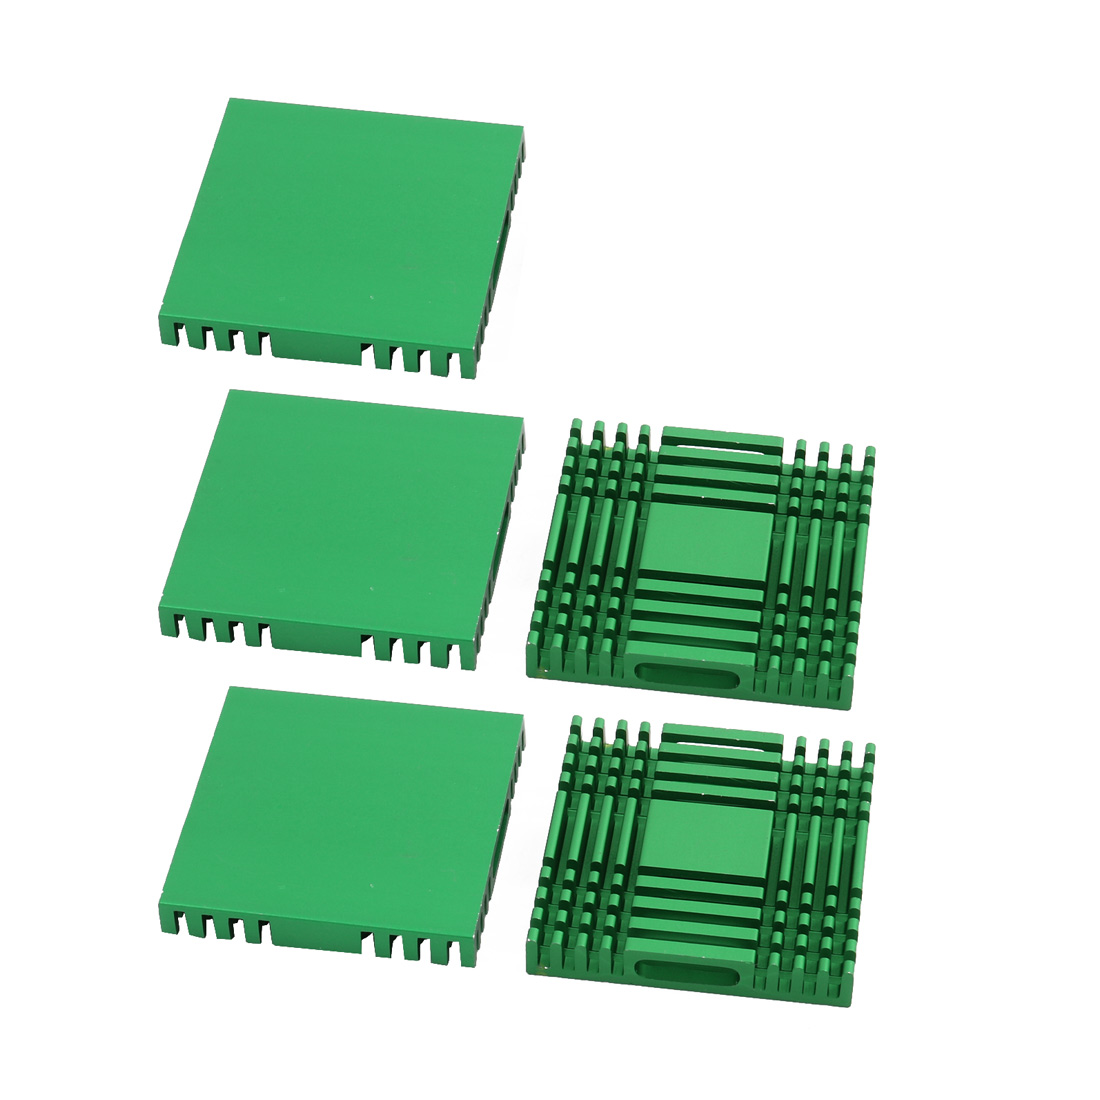 5Pcs 38mm x 38mm x 6mm Aluminum Heatsink Heat Diffuse Cooling Fin Green